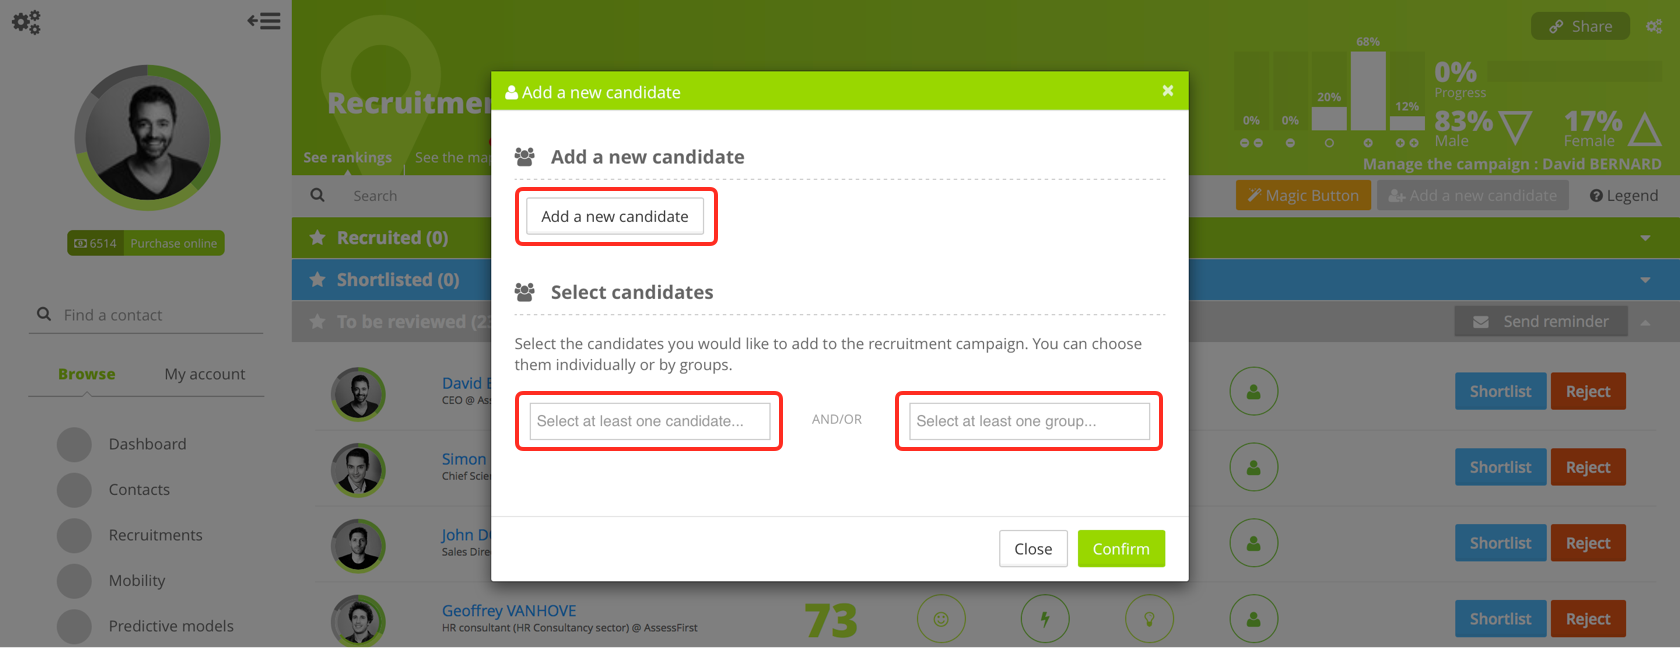 recruitment-campaigns-add-candidate-2.png